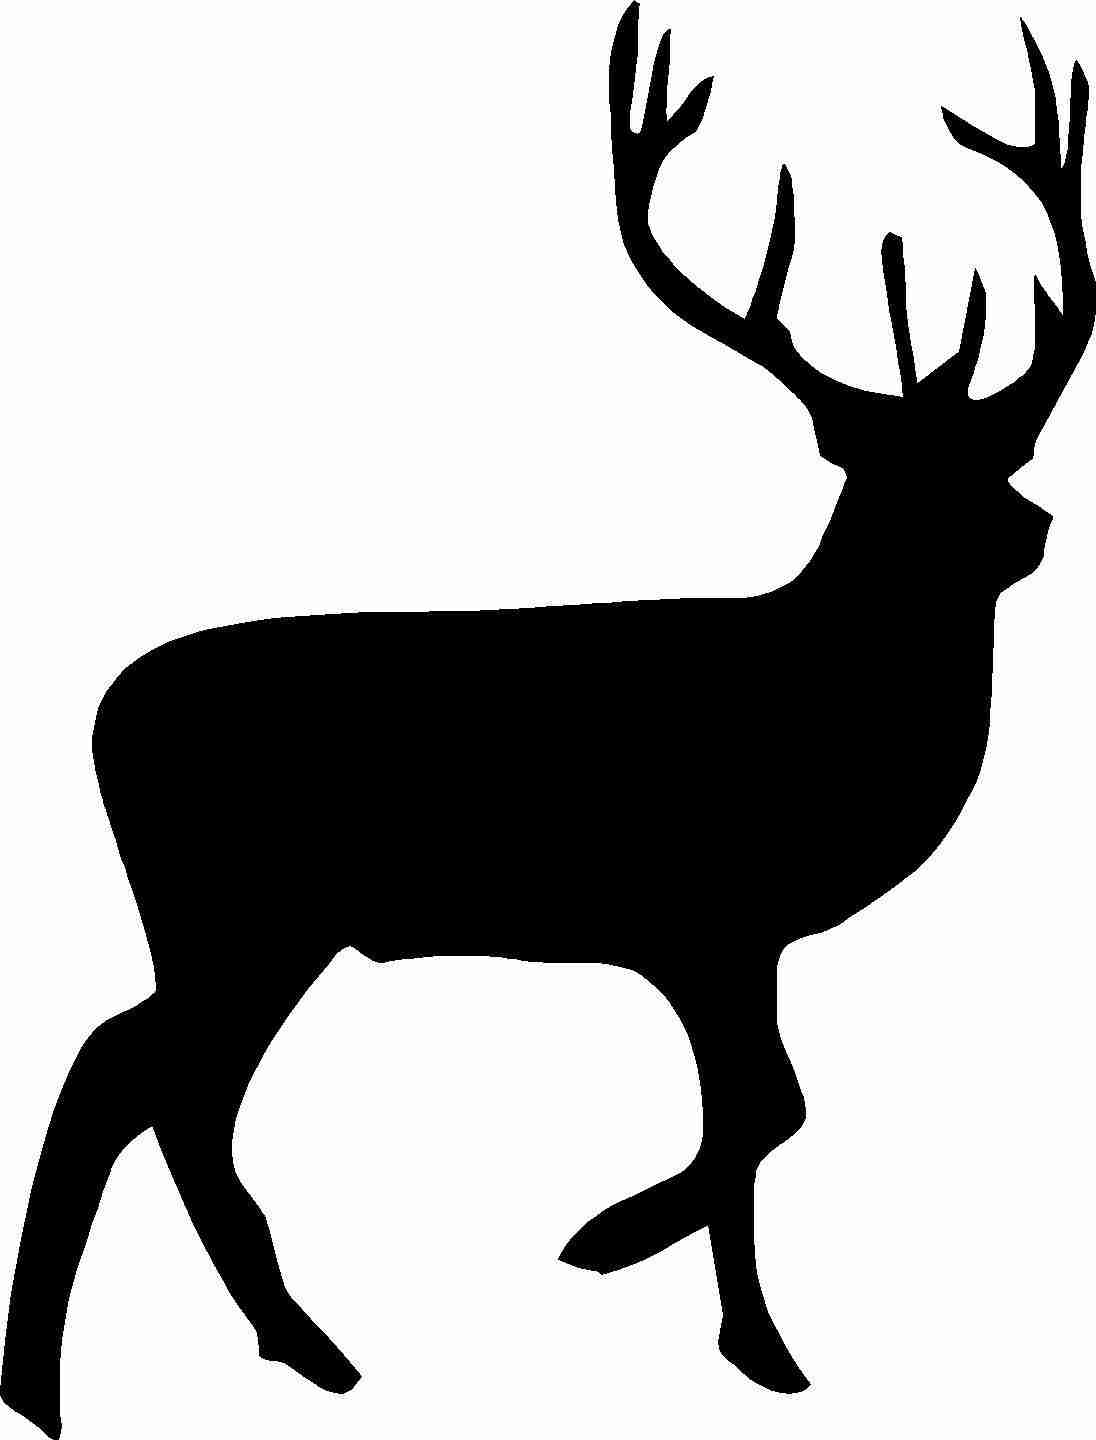 wildlife silhouette clip art at getdrawings com free for personal rh getdrawings com deer clip art black and white deer clipart images